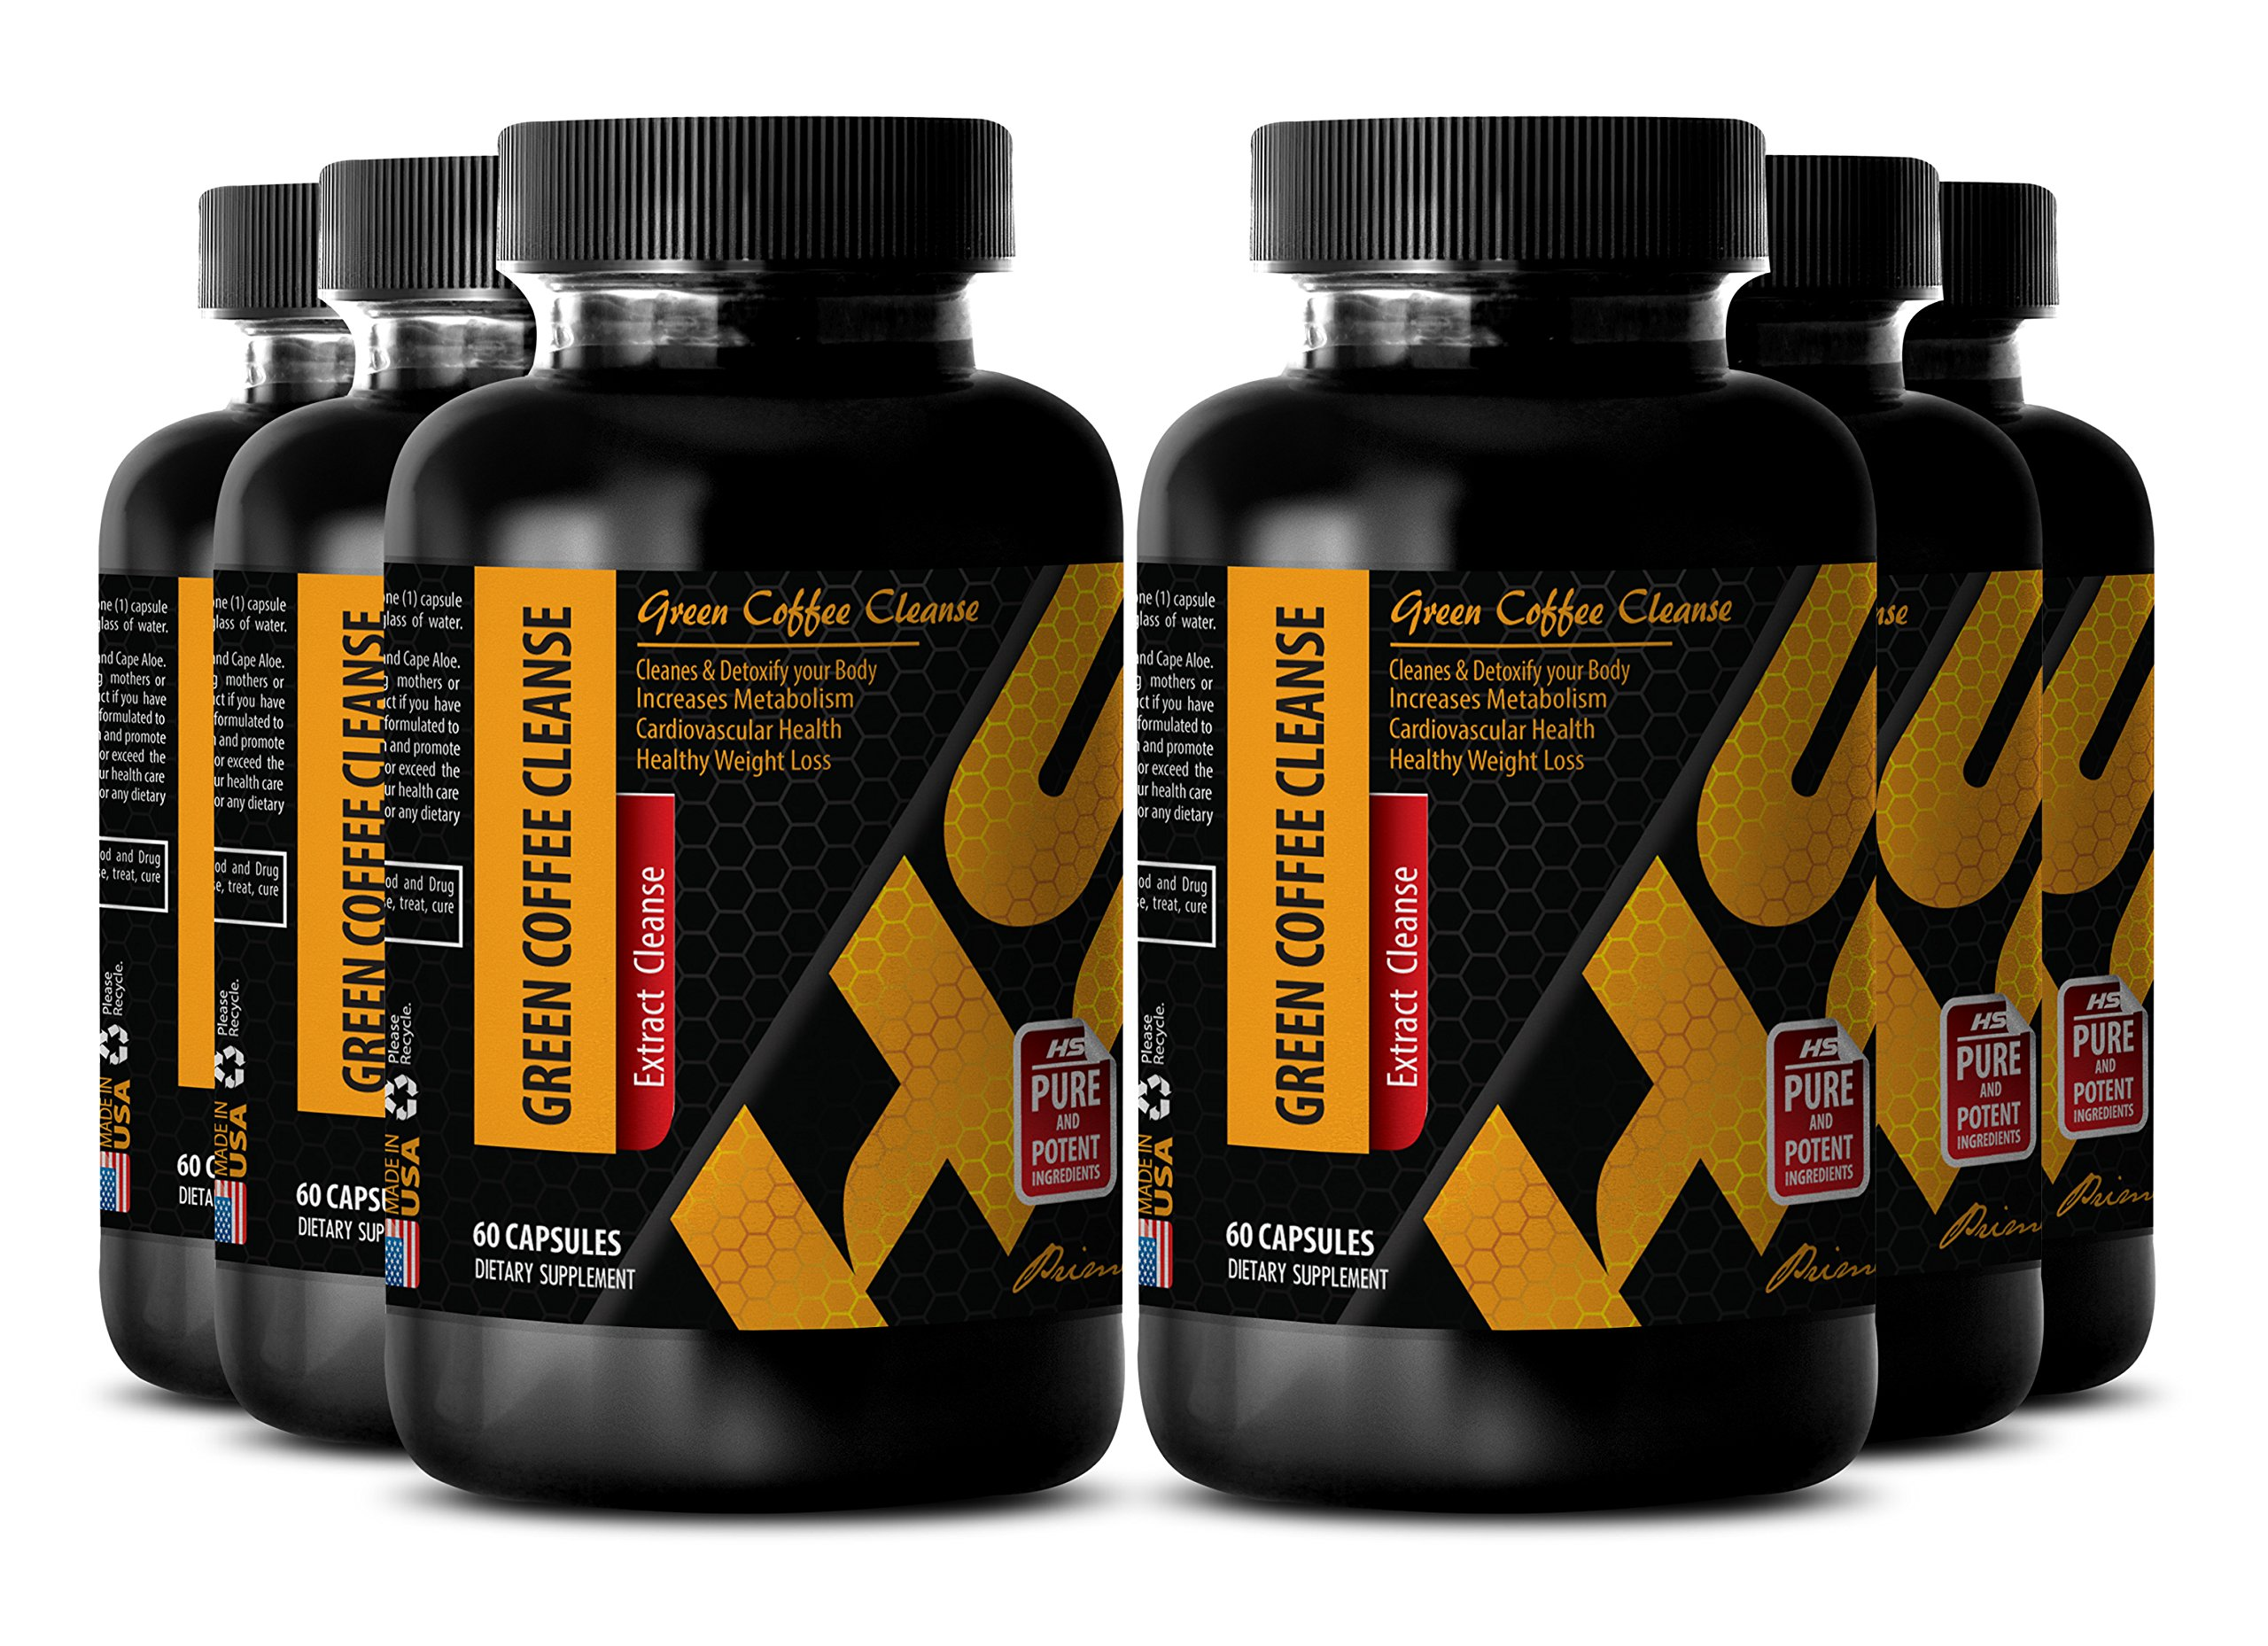 Fat burner pills - GREEN COFFEE CLEANSE - Goldenseal supplements - 6 Bottle 360 Capsules